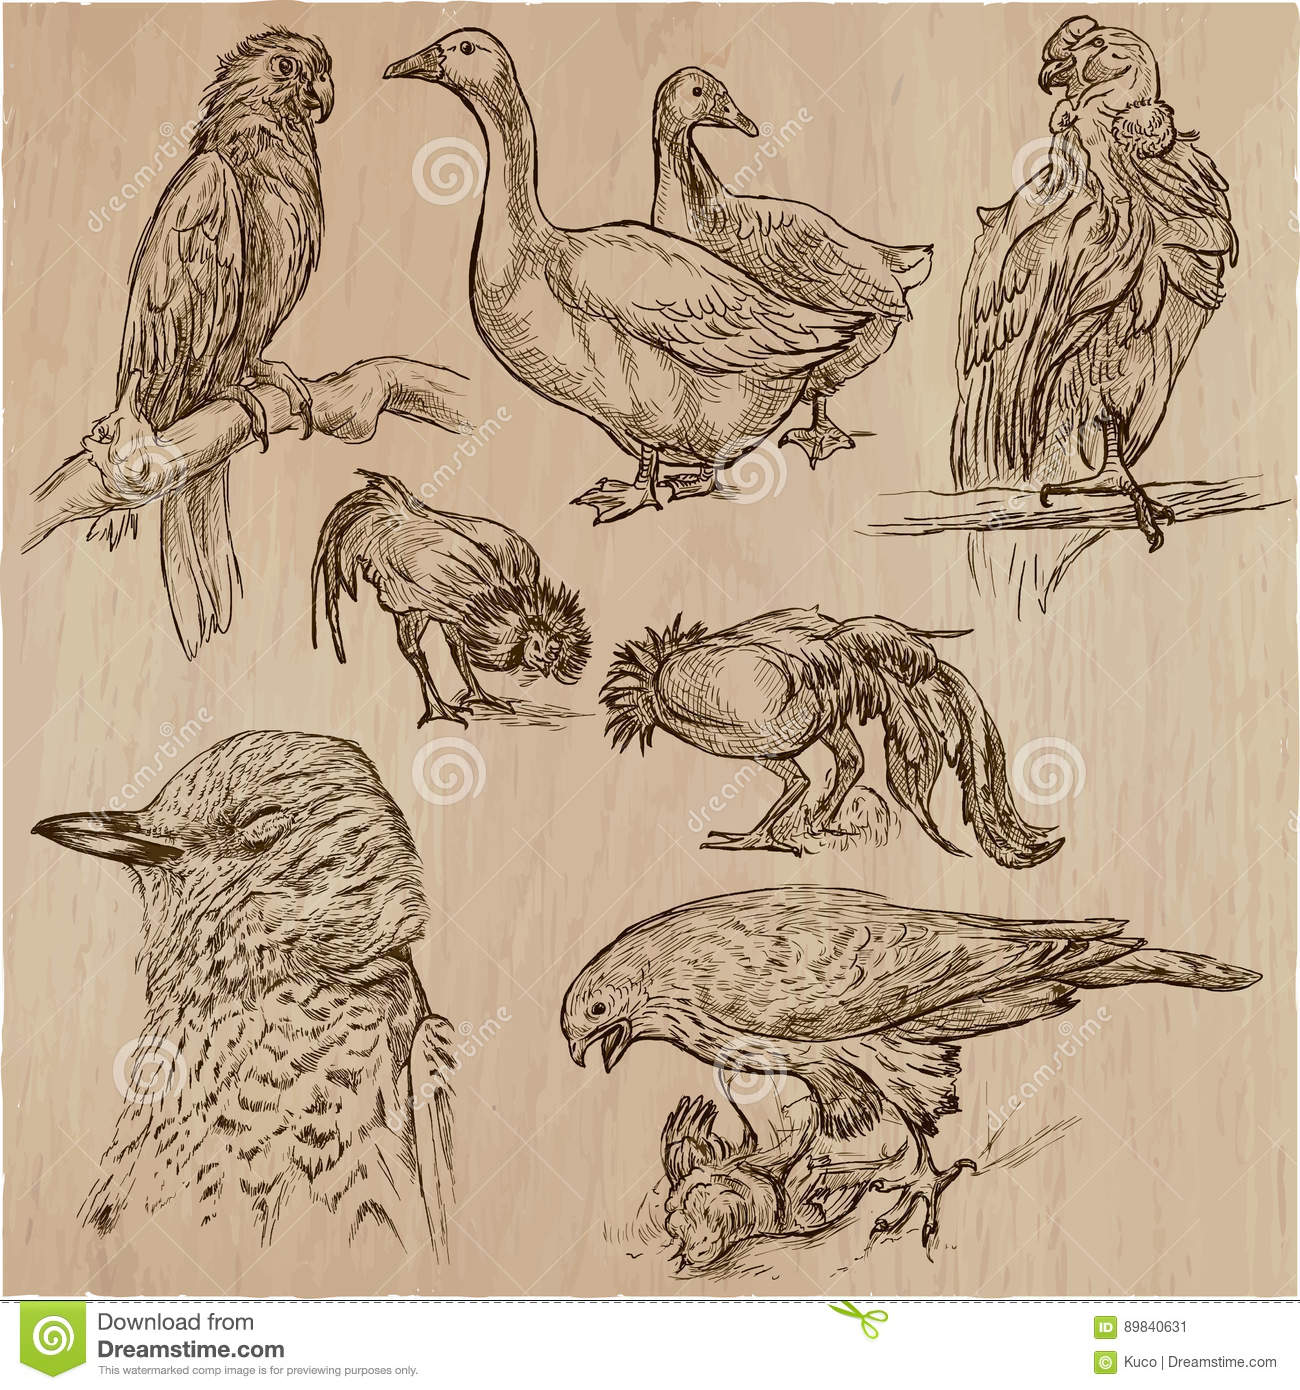 Drawing Lines Freehand : Birds animals around the world an hand drawn vector